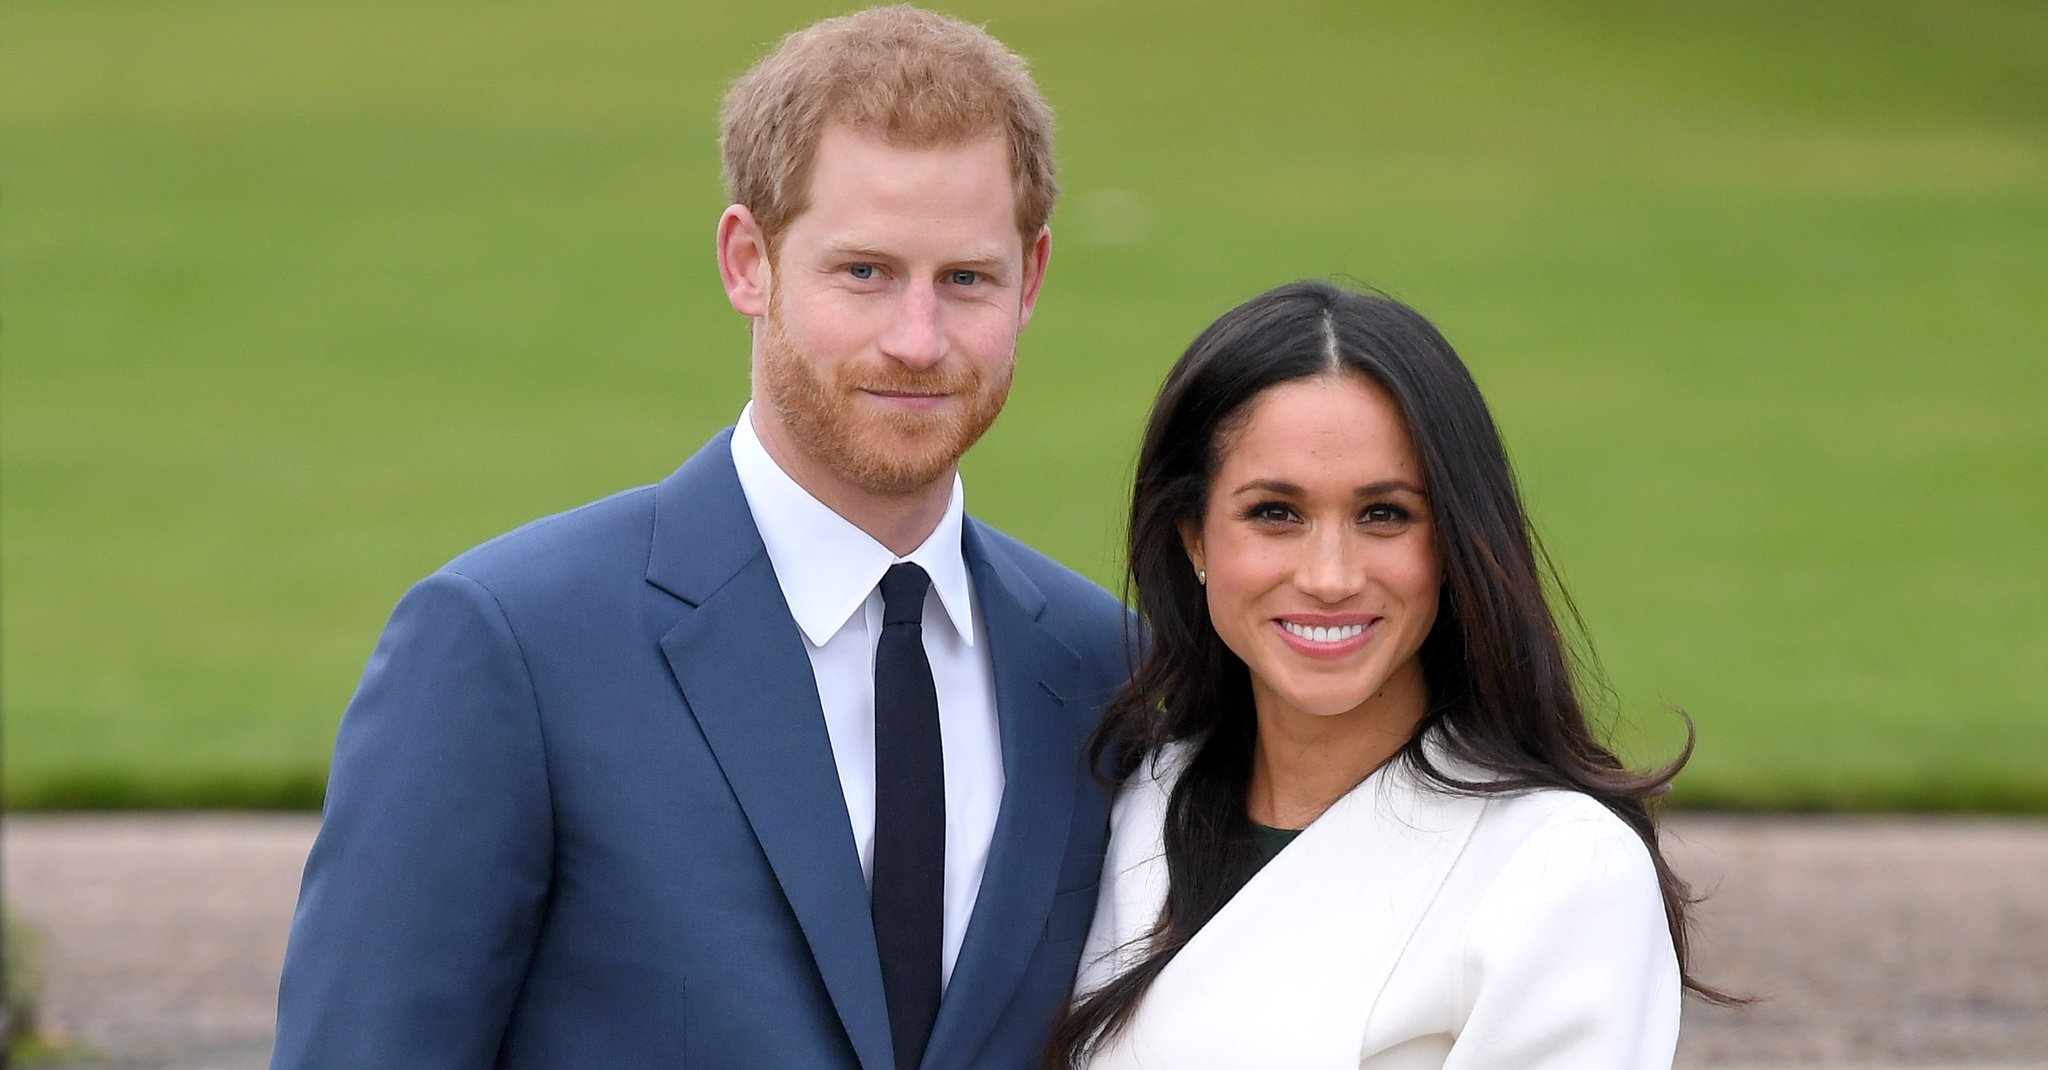 tmp 7spdQy cf92353a7d53165a edit img facebook post image file 17053398 1512691183 - Meghan Markle wants to have her baby at her new home like the queen